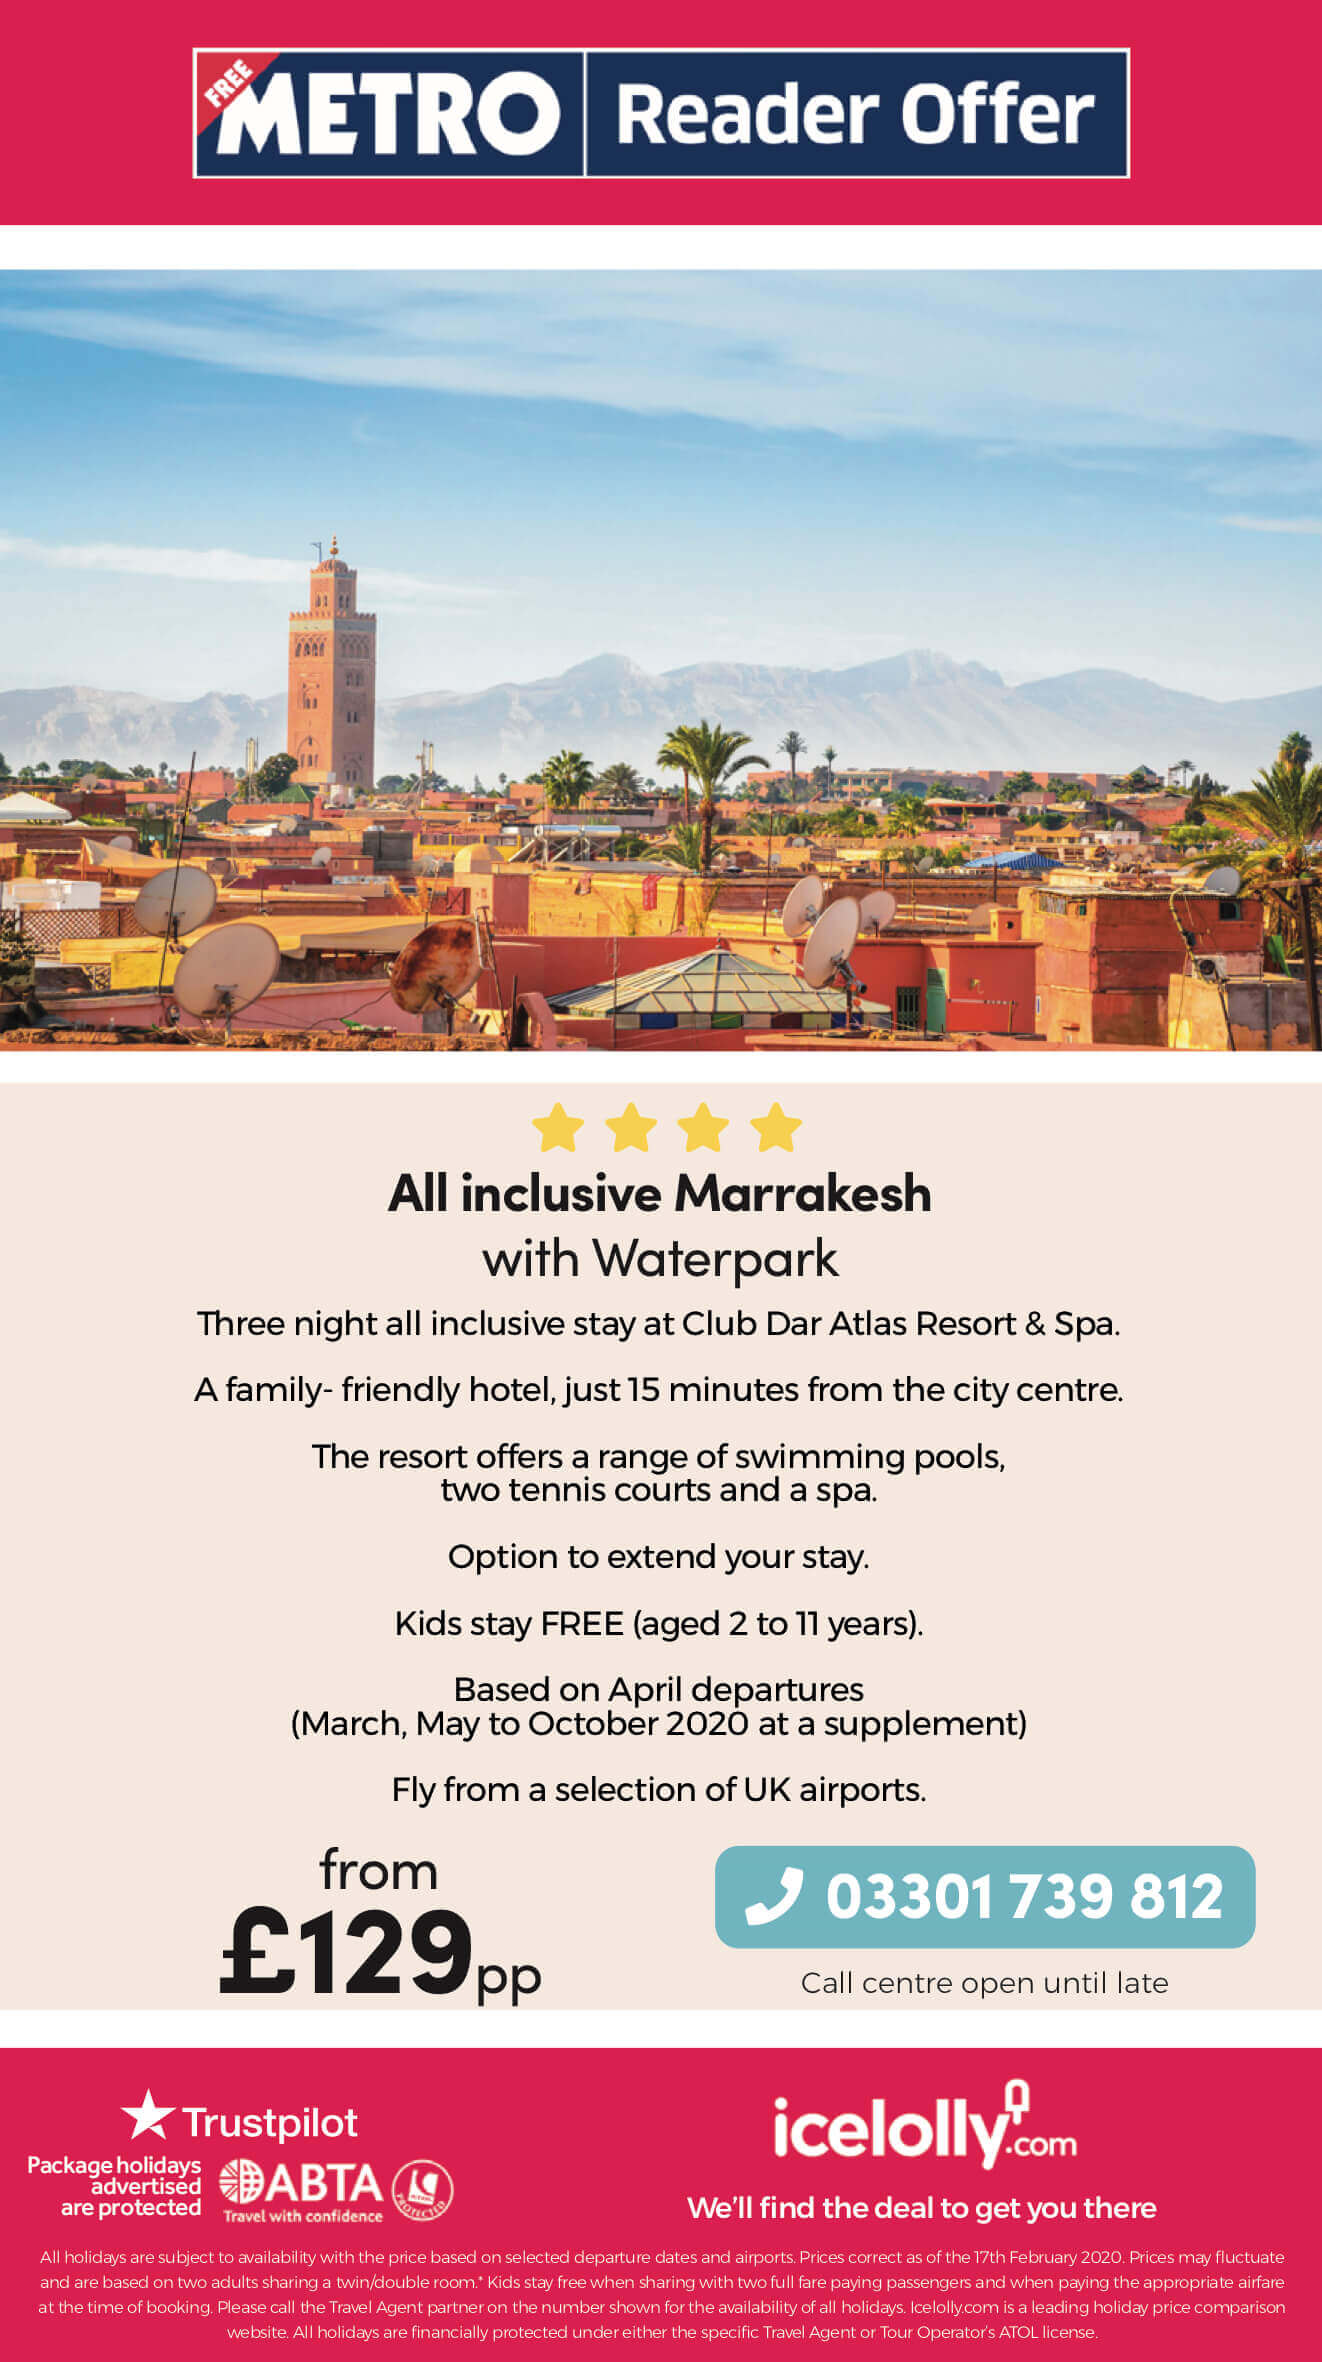 All Inclusive Marrakesh offer